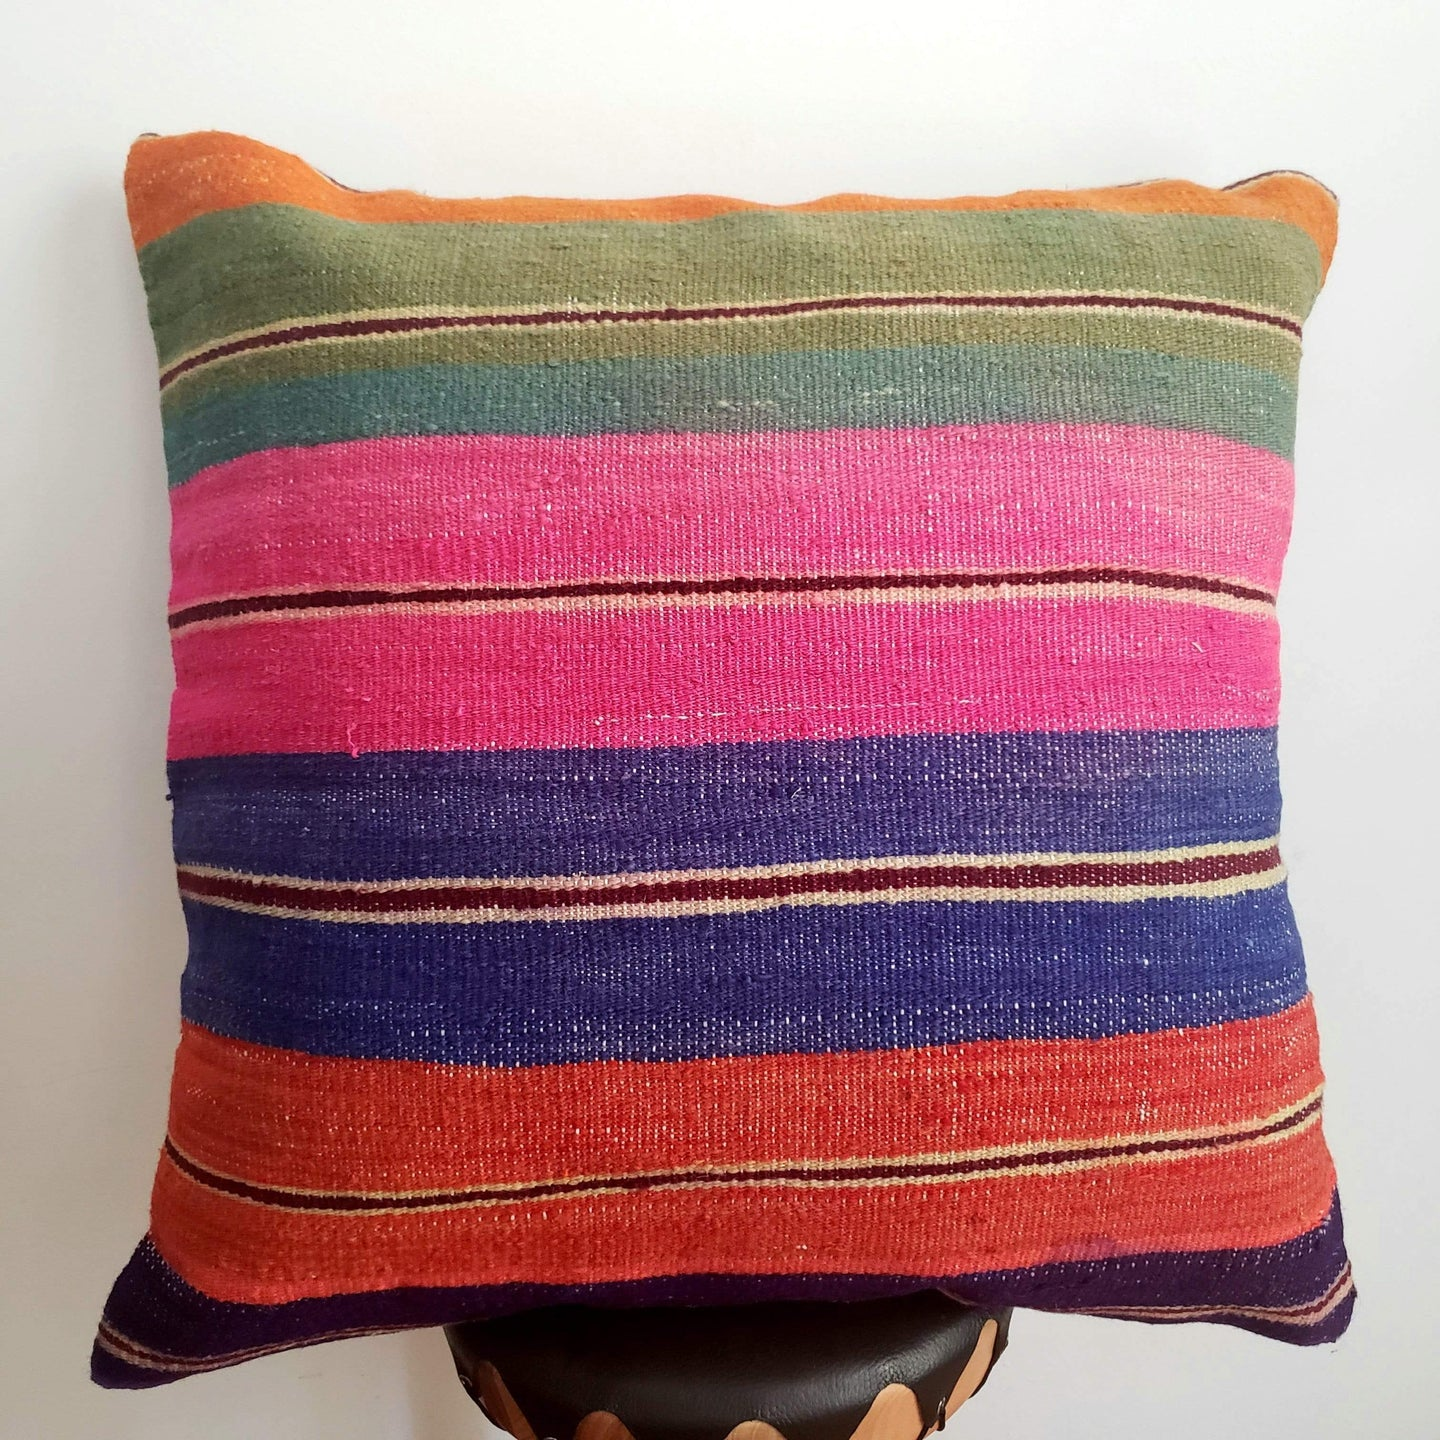 Berber Wool Pillow - Vintage Moroccan Floor Cushion VKFP062